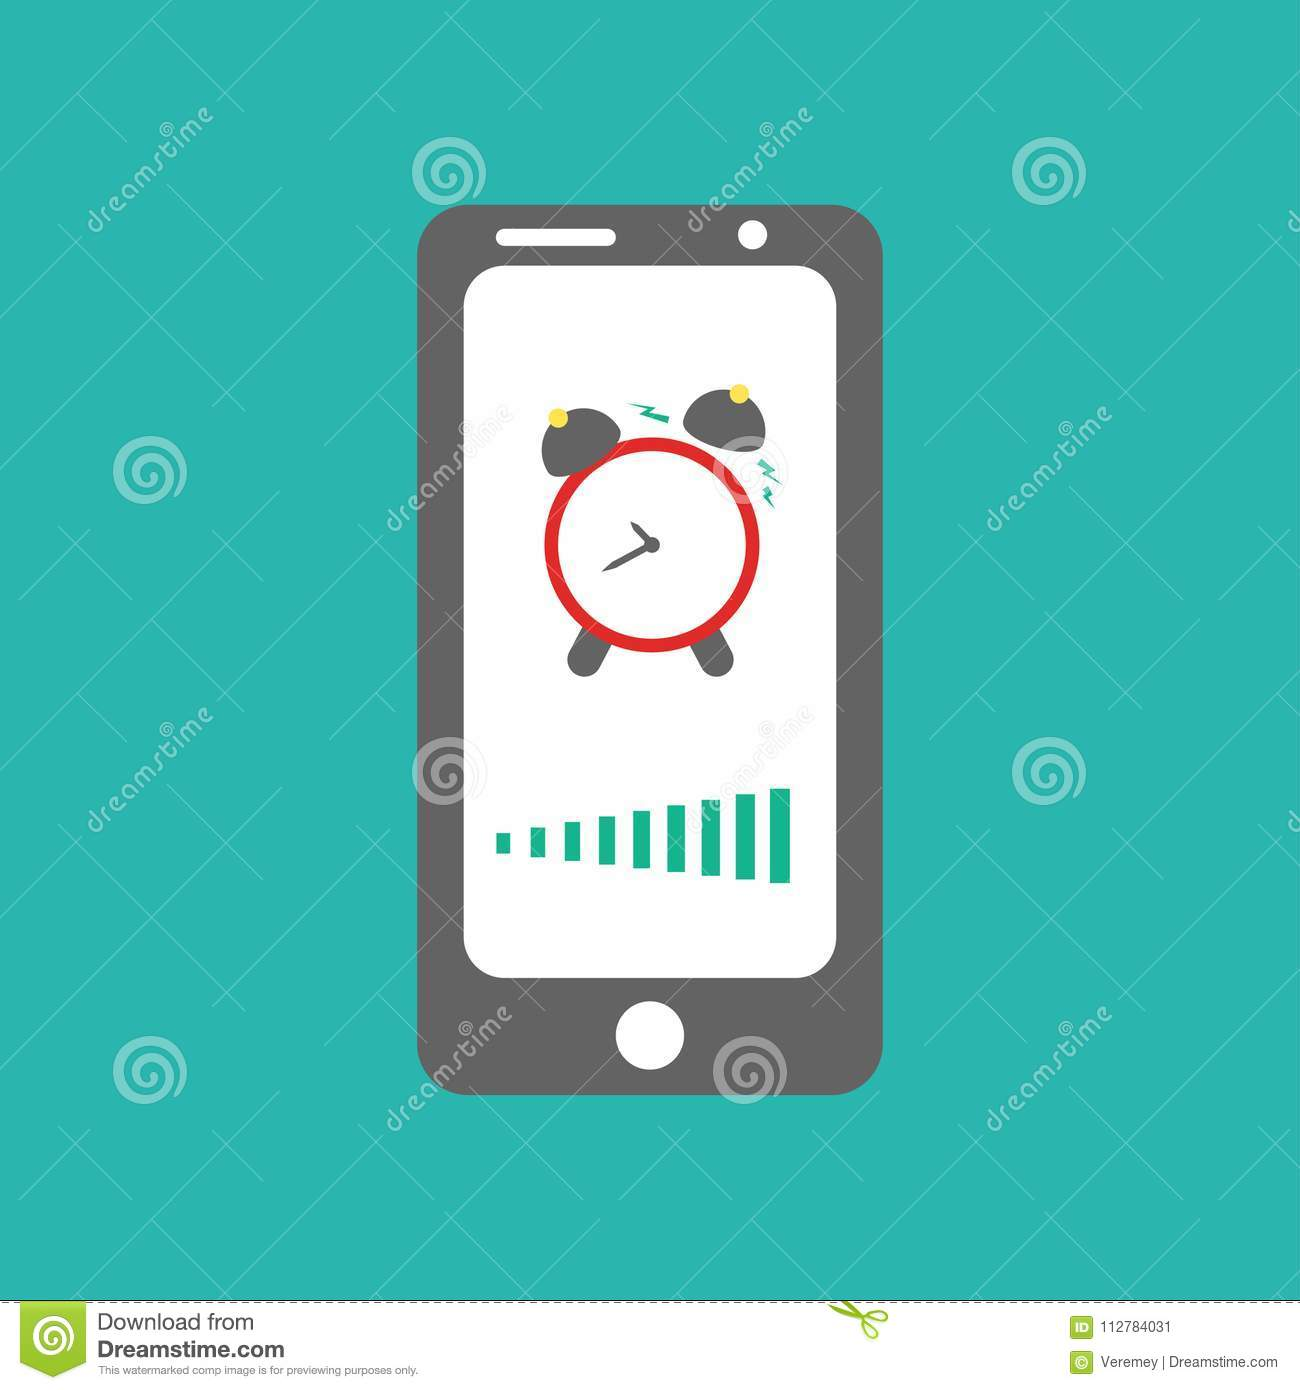 Smart phone alarm clock  stock vector  Illustration of mobile